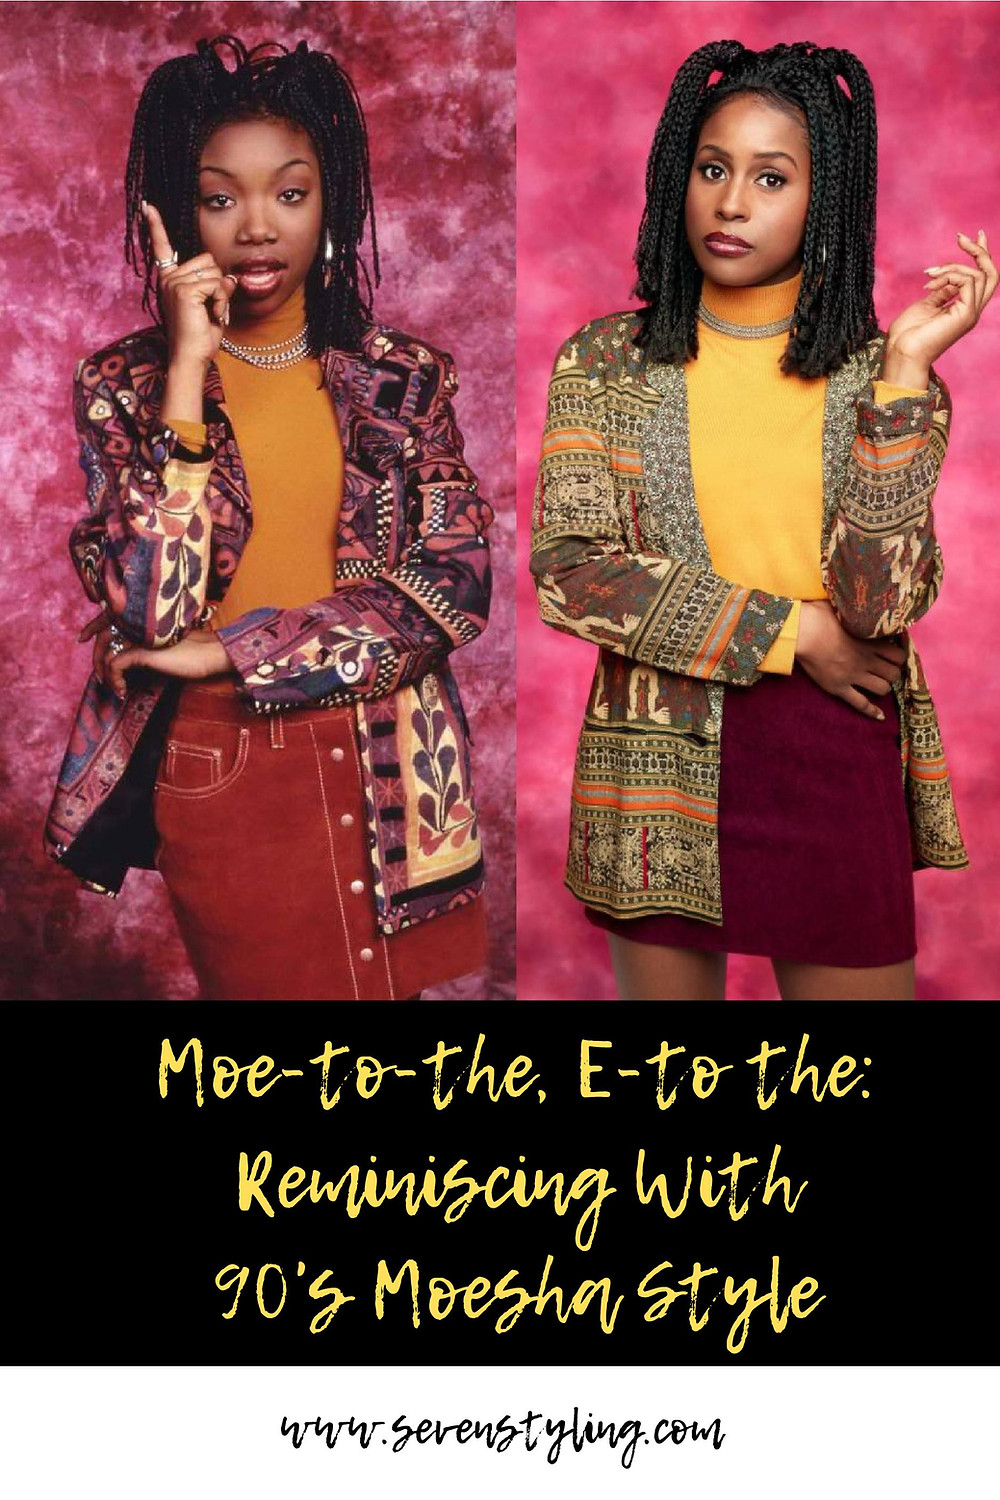 Moe-To-The, E-To-The: Reminiscing With 90's Moesha Style